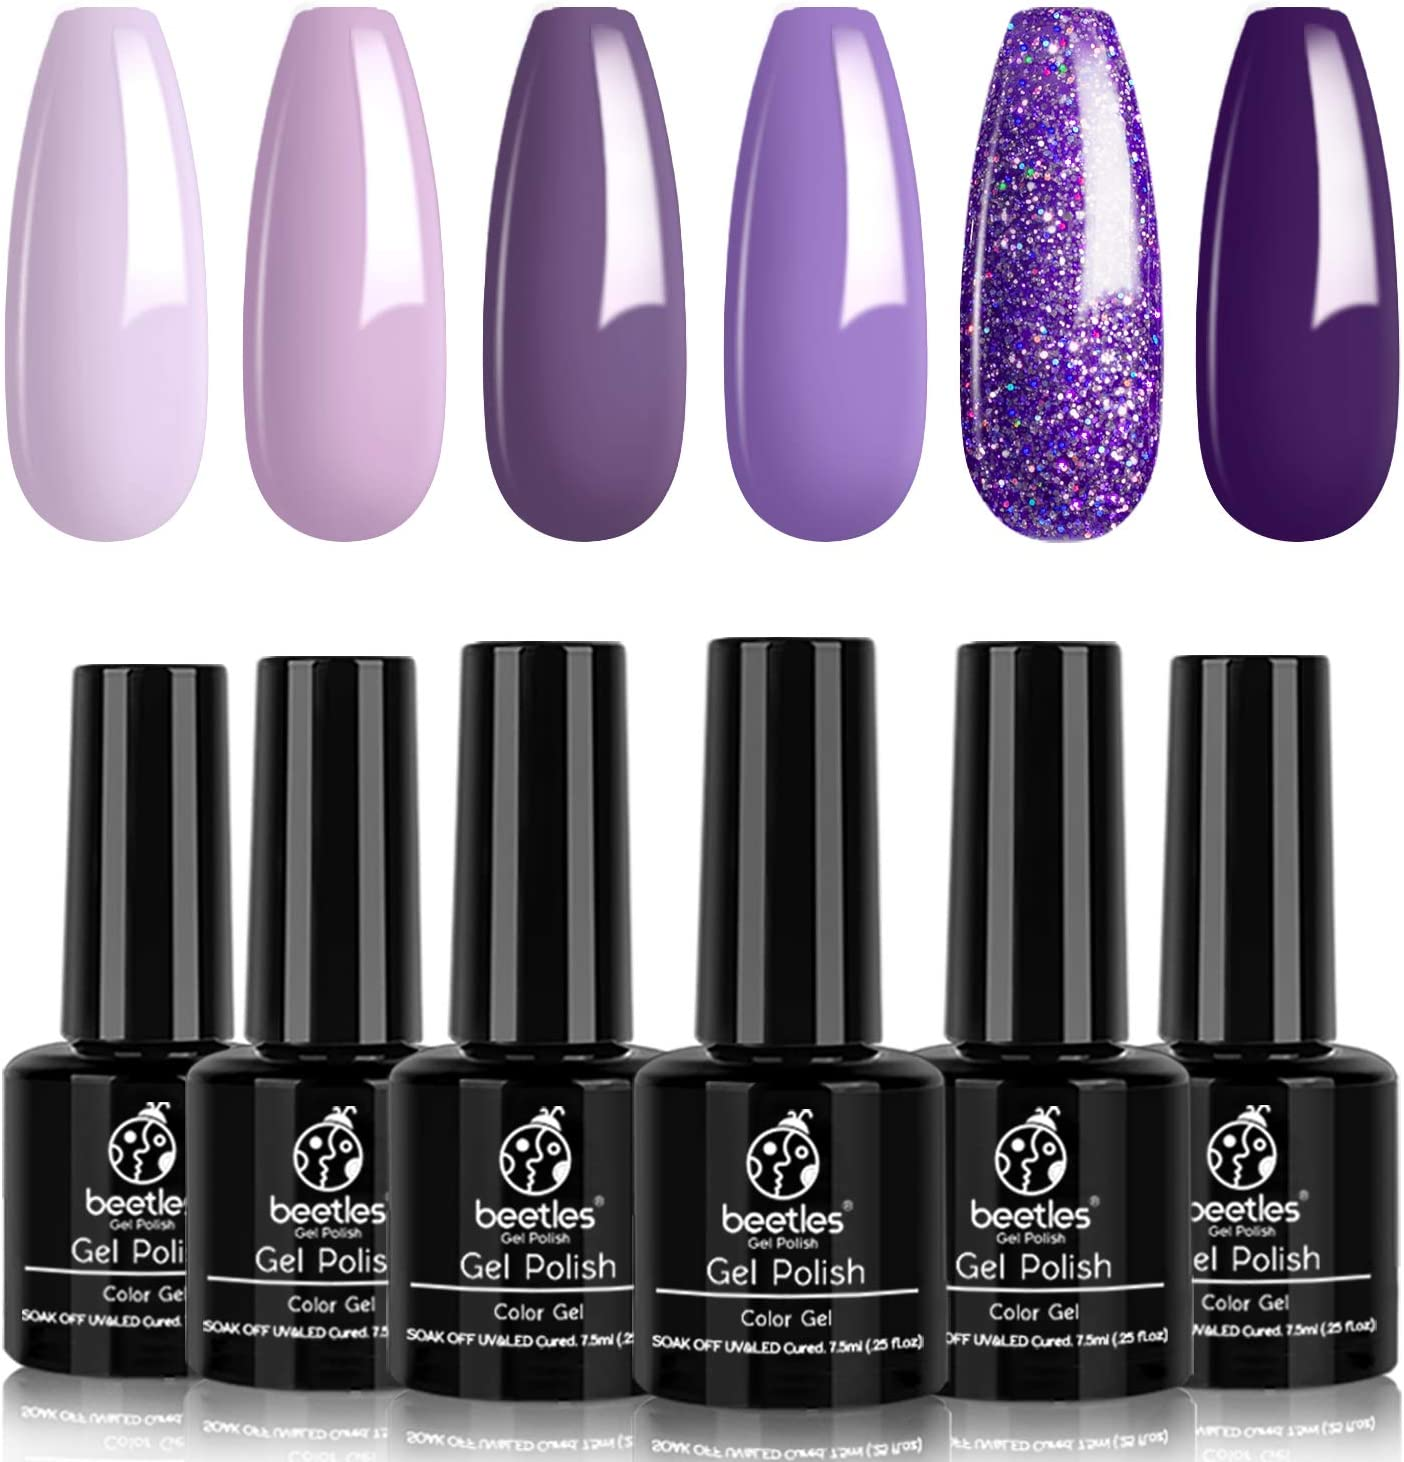 Beetles Purple Gel Nail Polish Kit- 6 Colors Gel Polish Set Grape Purple Nail Polish Soak Off LED Gel Nail Kit Nail Art Manicure Salon DIY at Home